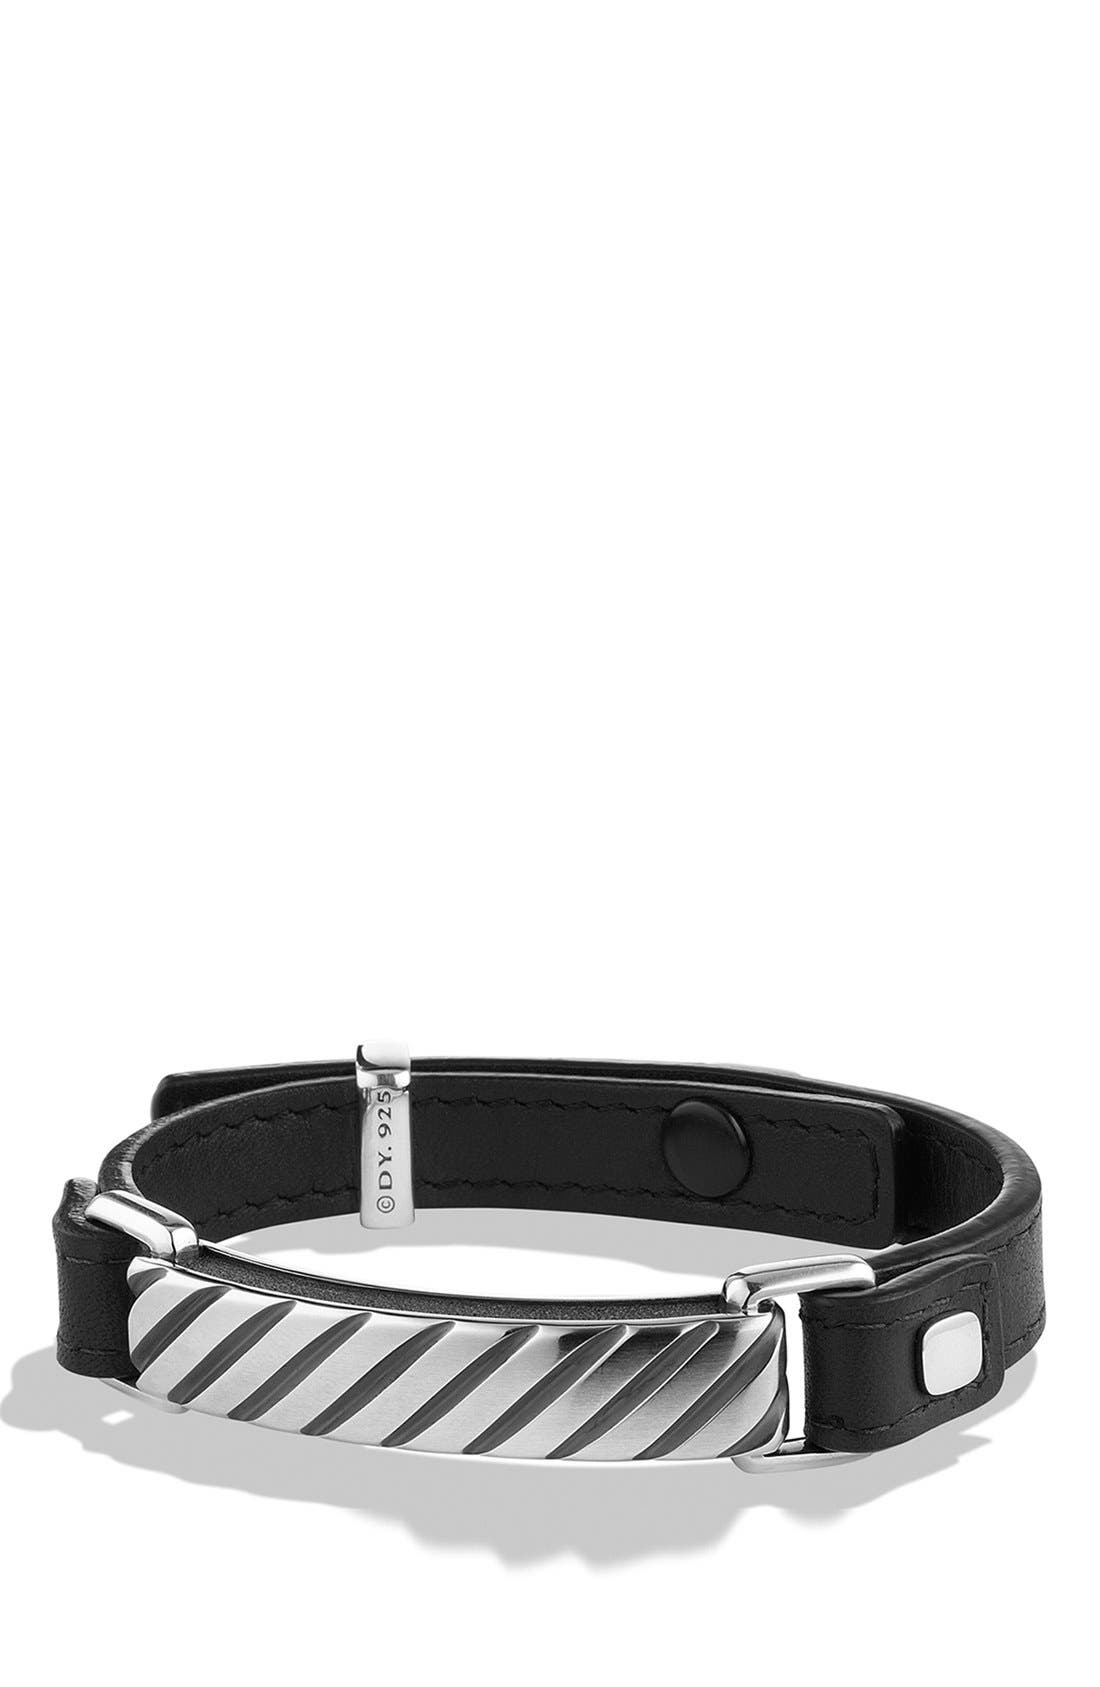 DAVID YURMAN Modern Cable ID Bracelet, Main, color, BLACK